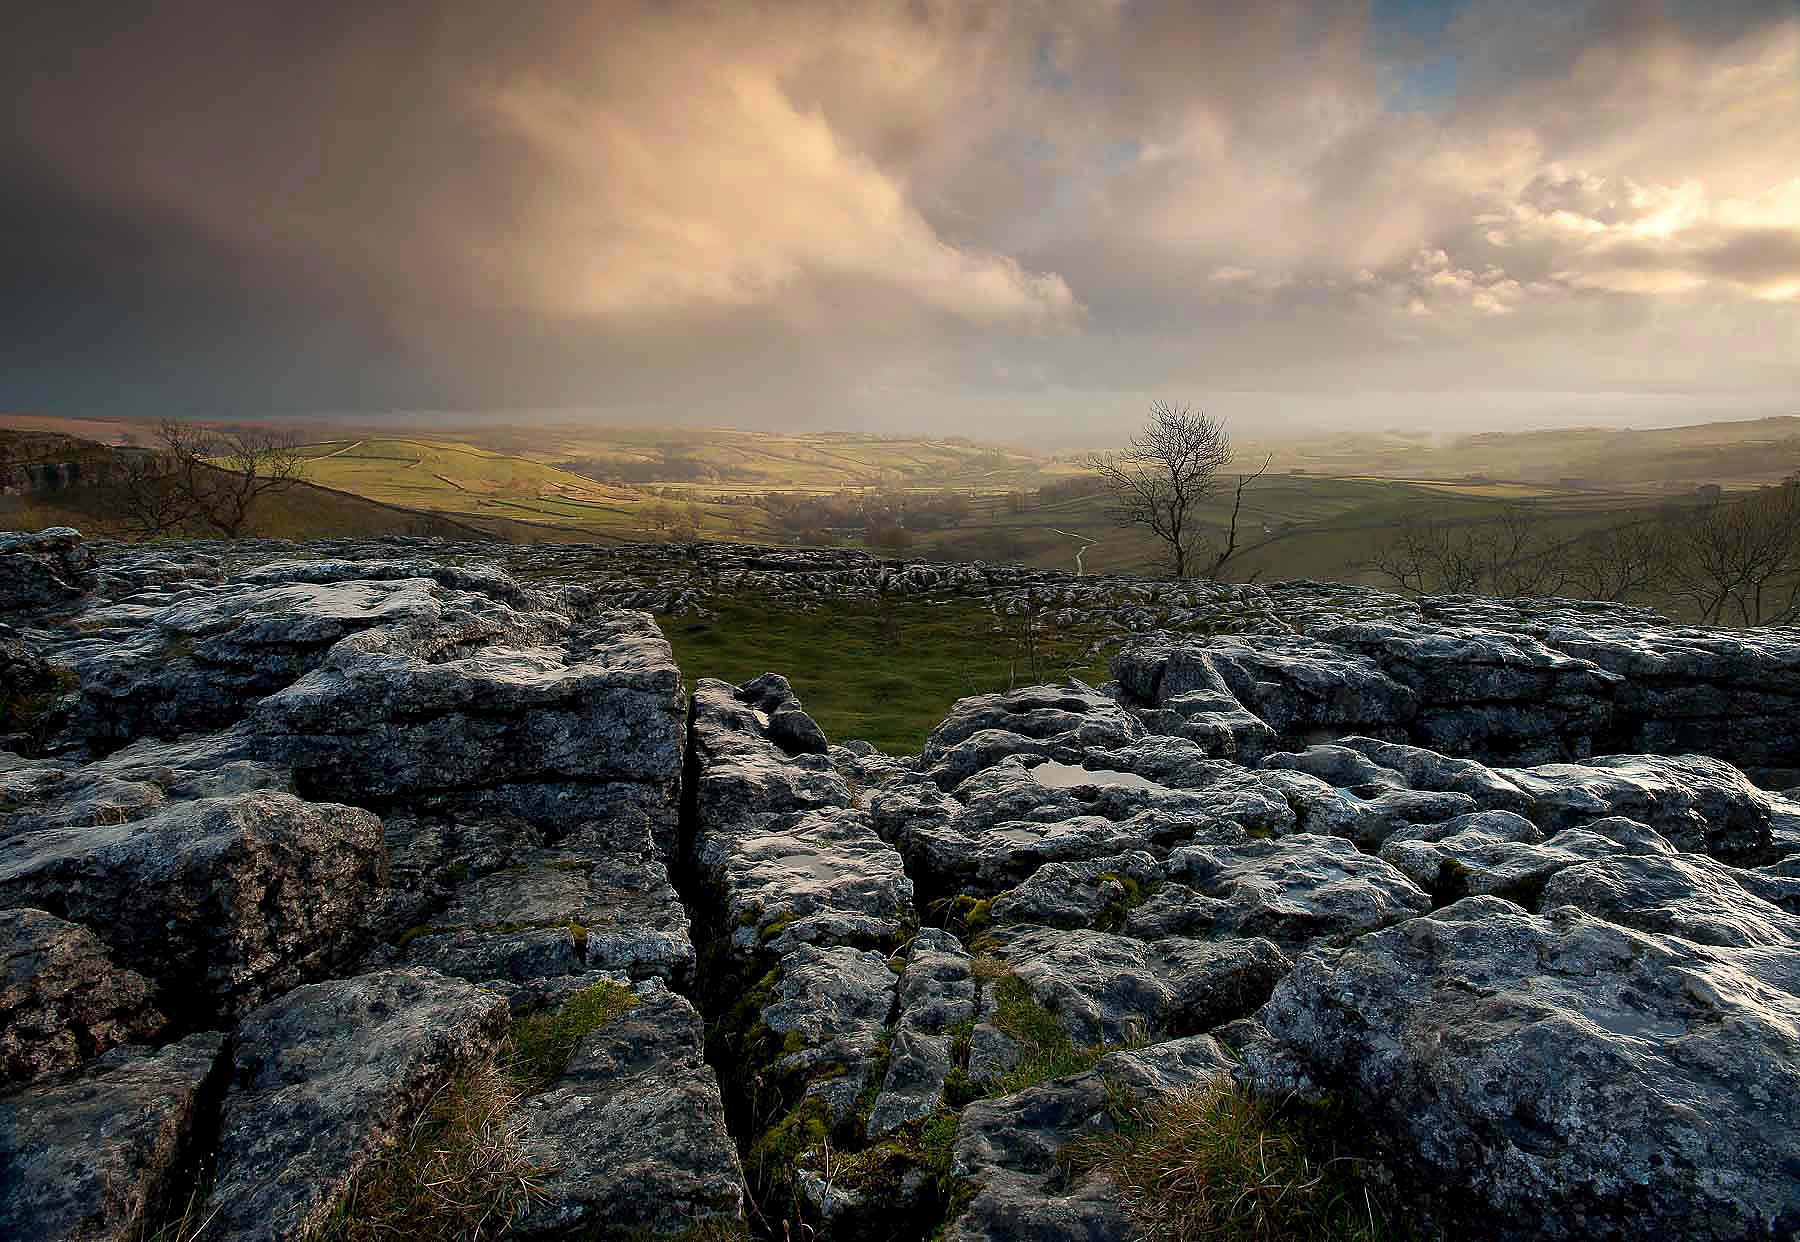 Malham-Cove-Yorkshire-Dales-National-Park-UK-Landscape